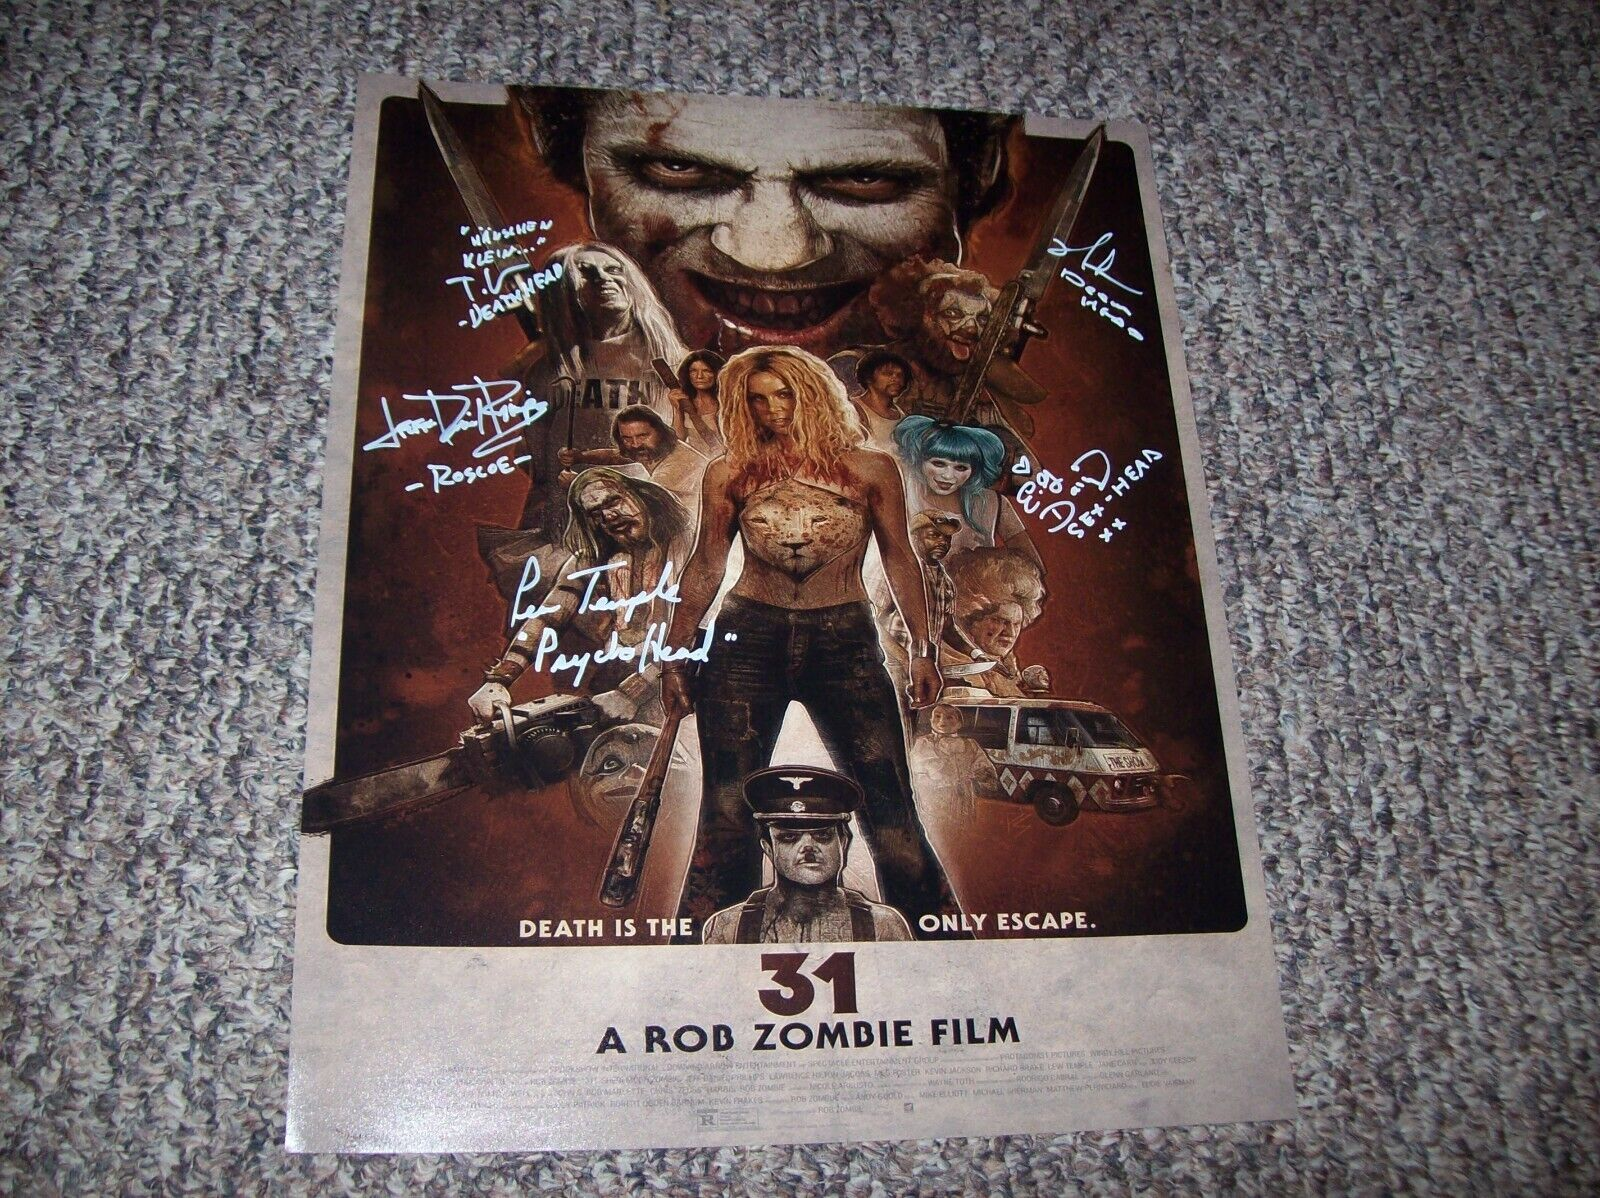 31 Rob Zombie Horror Movie Cast Autographed 16X20 Photo Hand Signed By 5 - $51.00